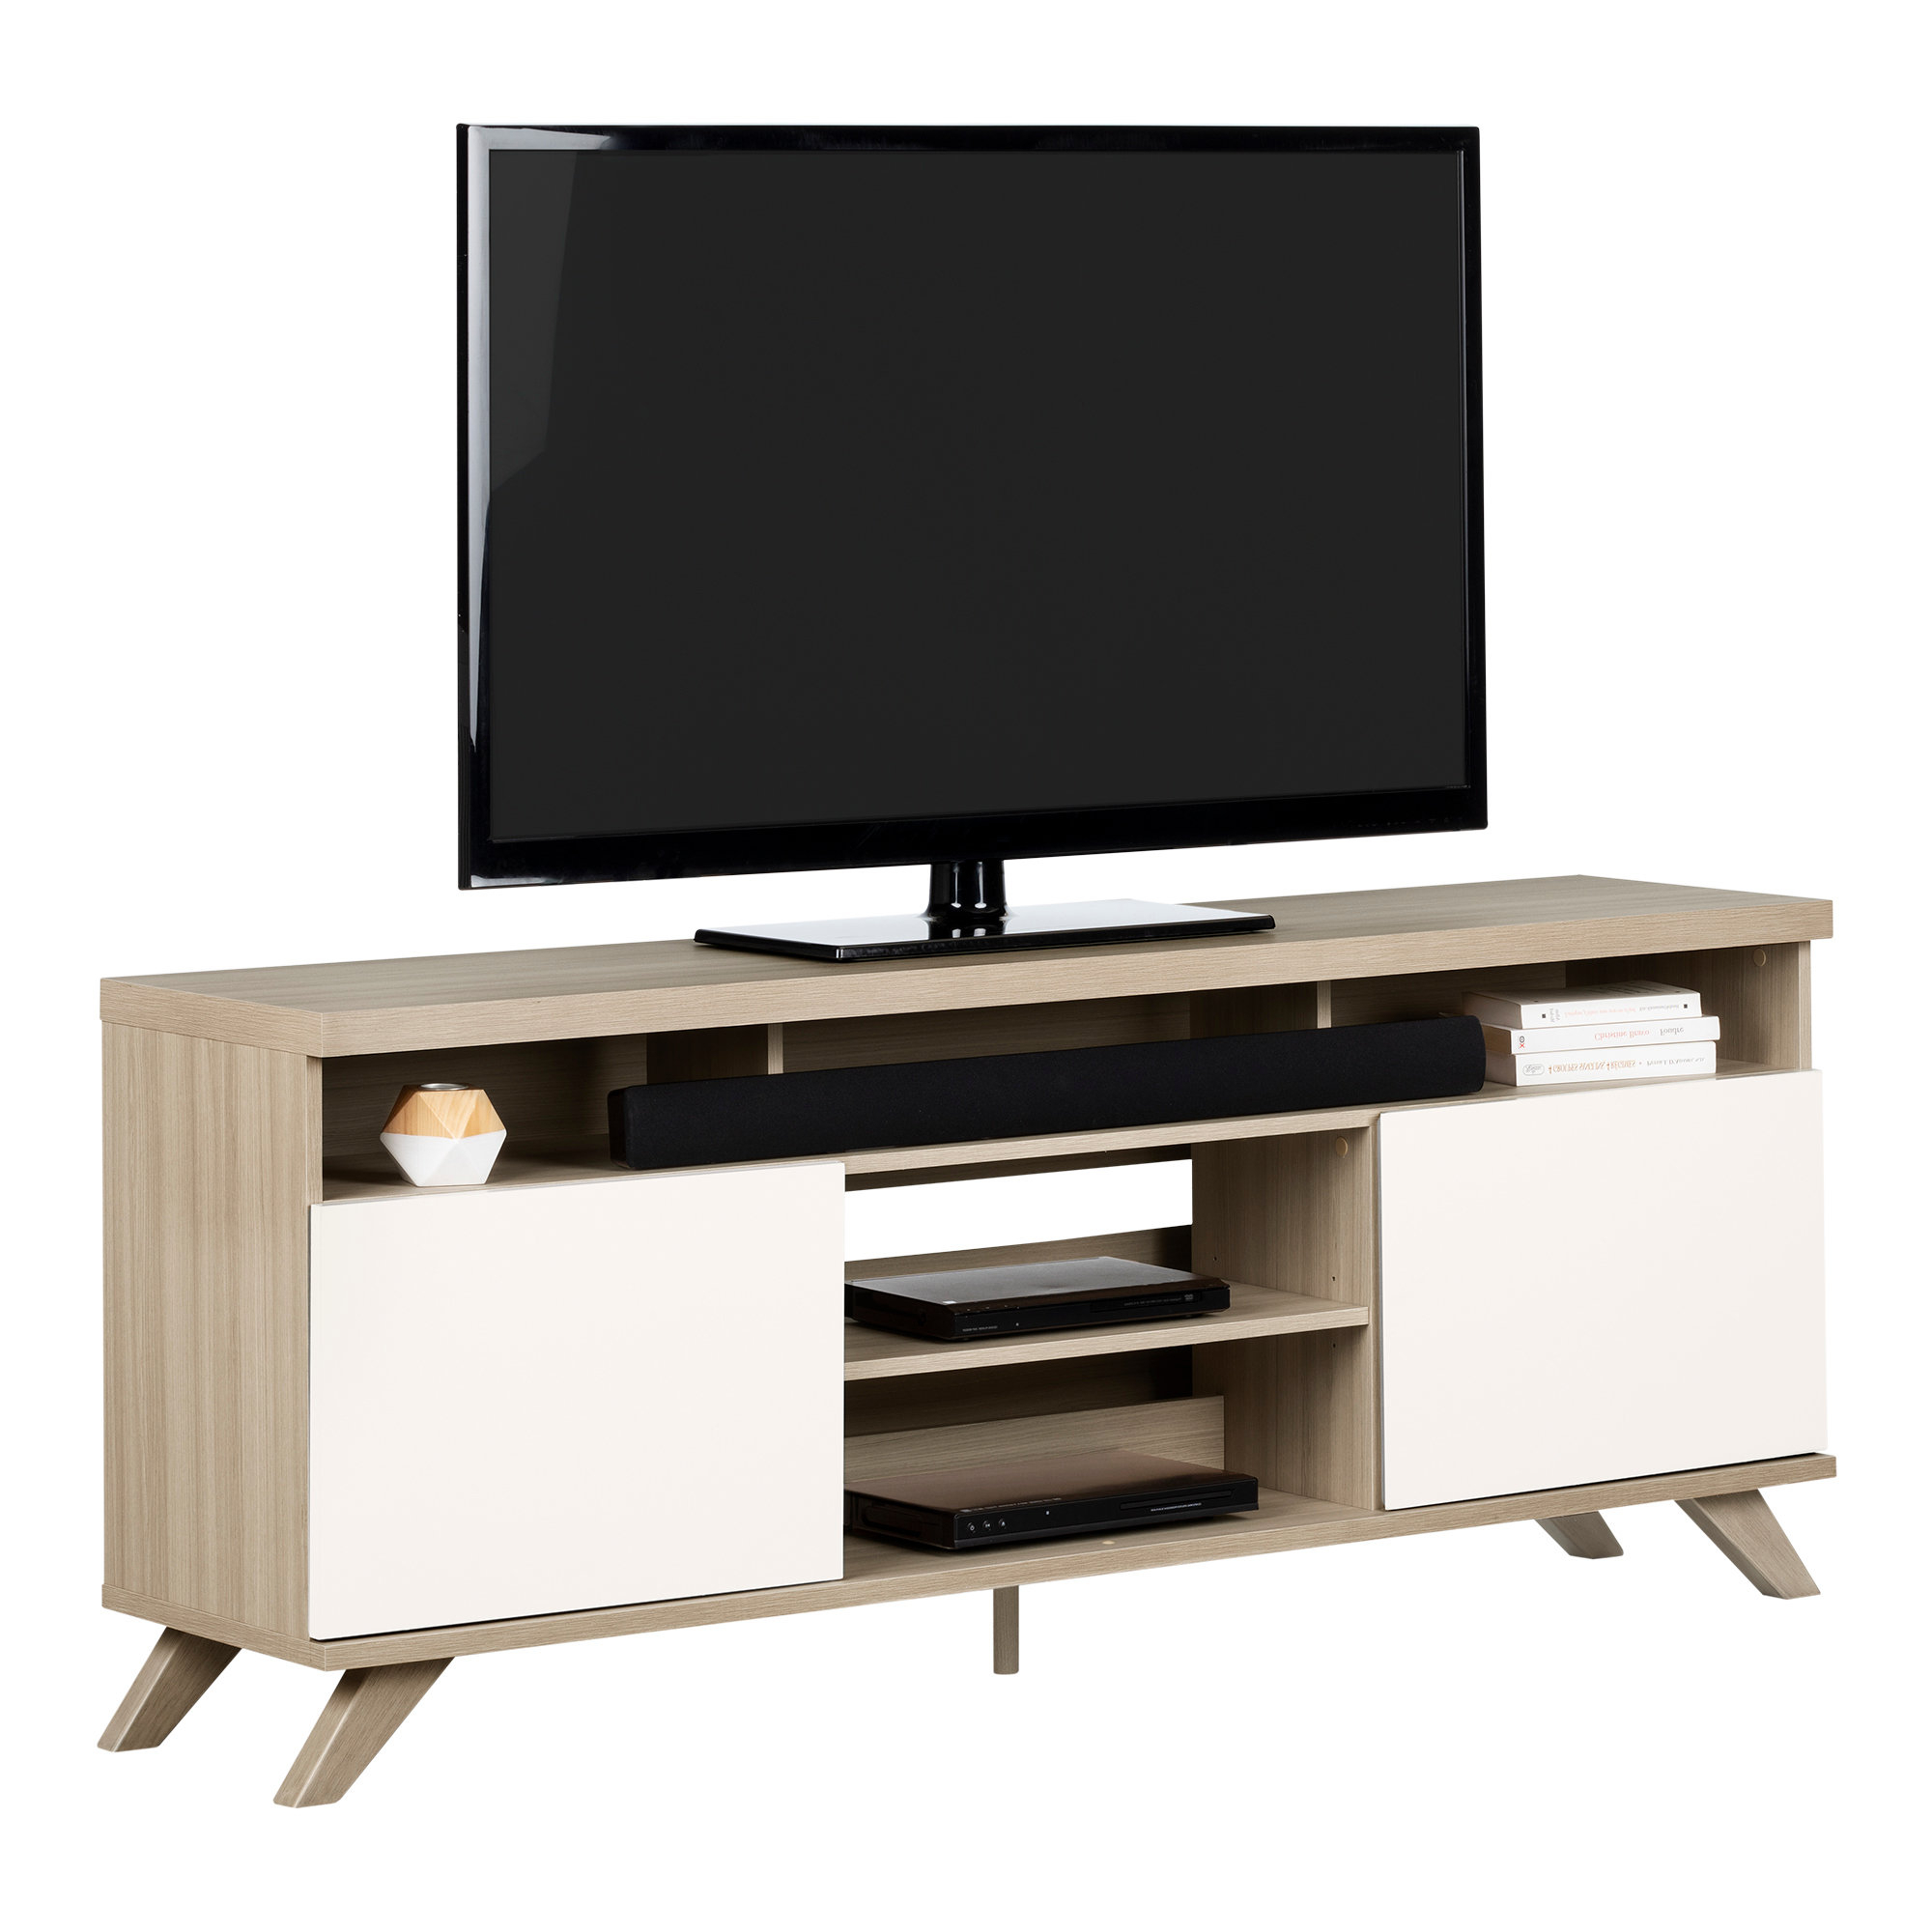 Modern 70 Inch Tv Stands + Entertainment Centers (View 4 of 20)